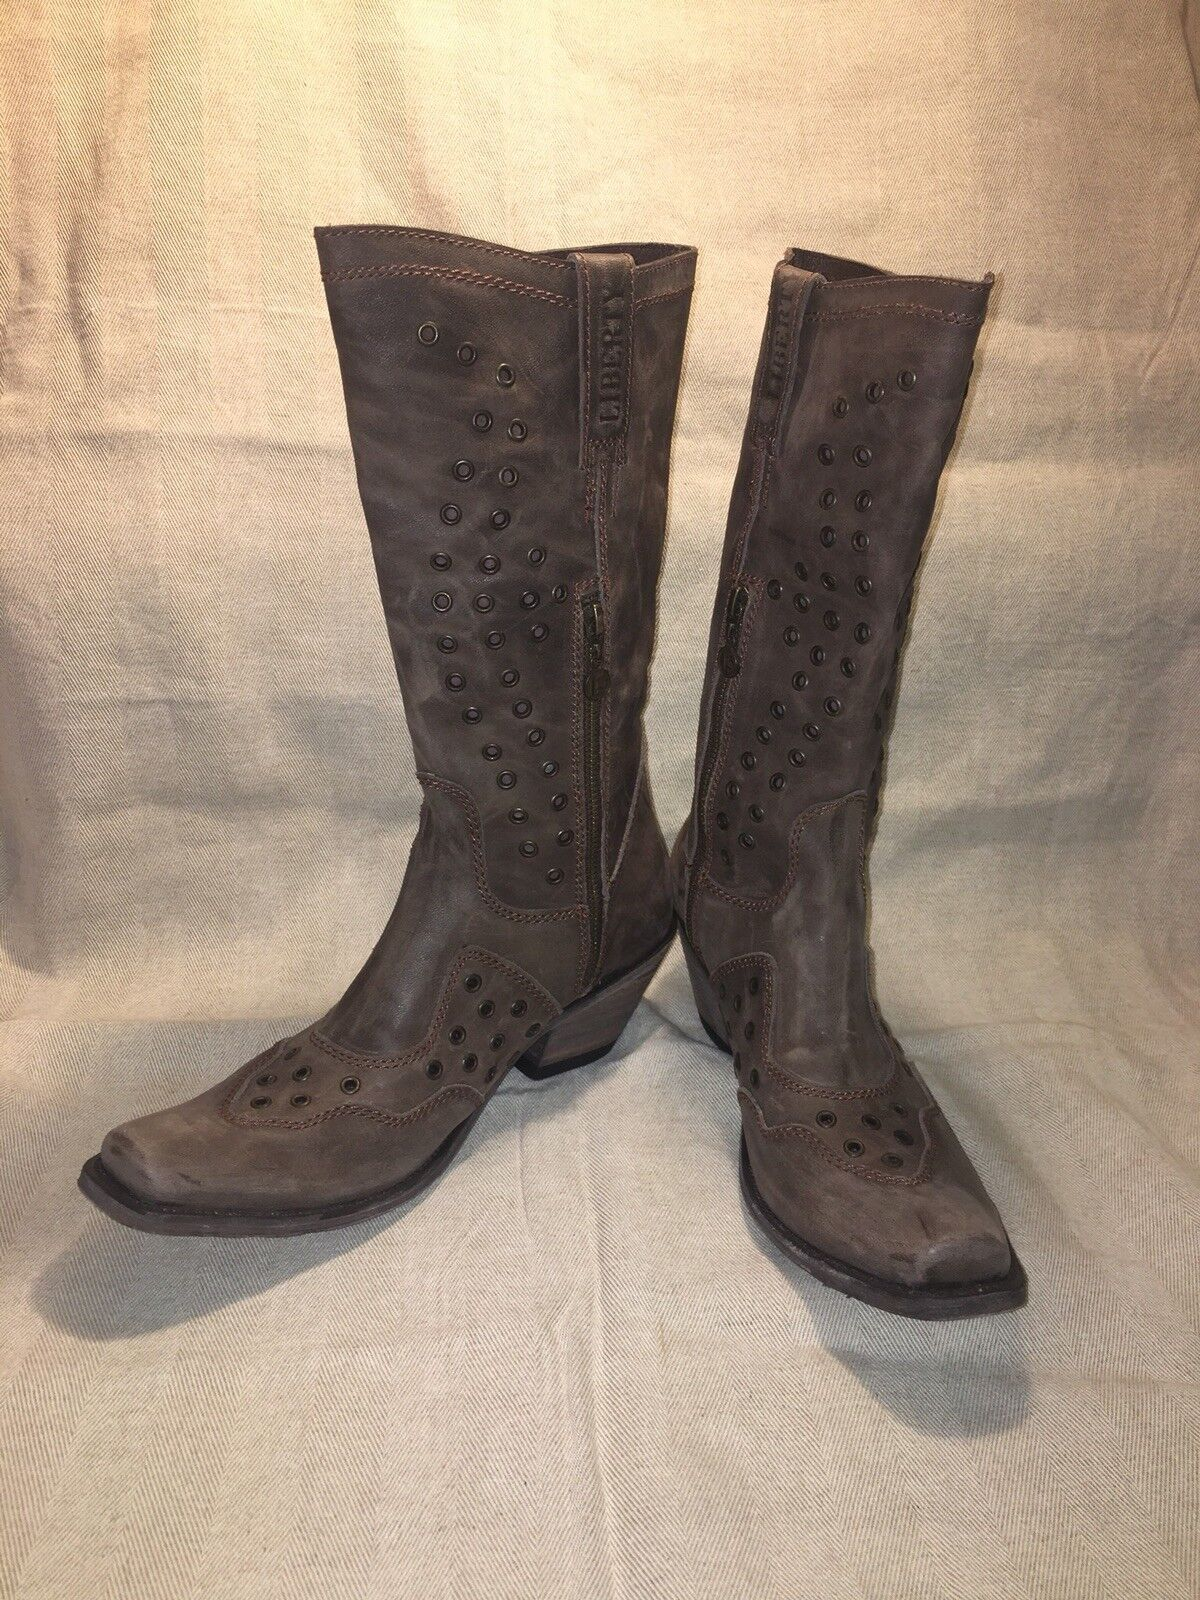 Liberty Black Boots, America Cafe Lote Distressed Brown Leather Women's Size 9